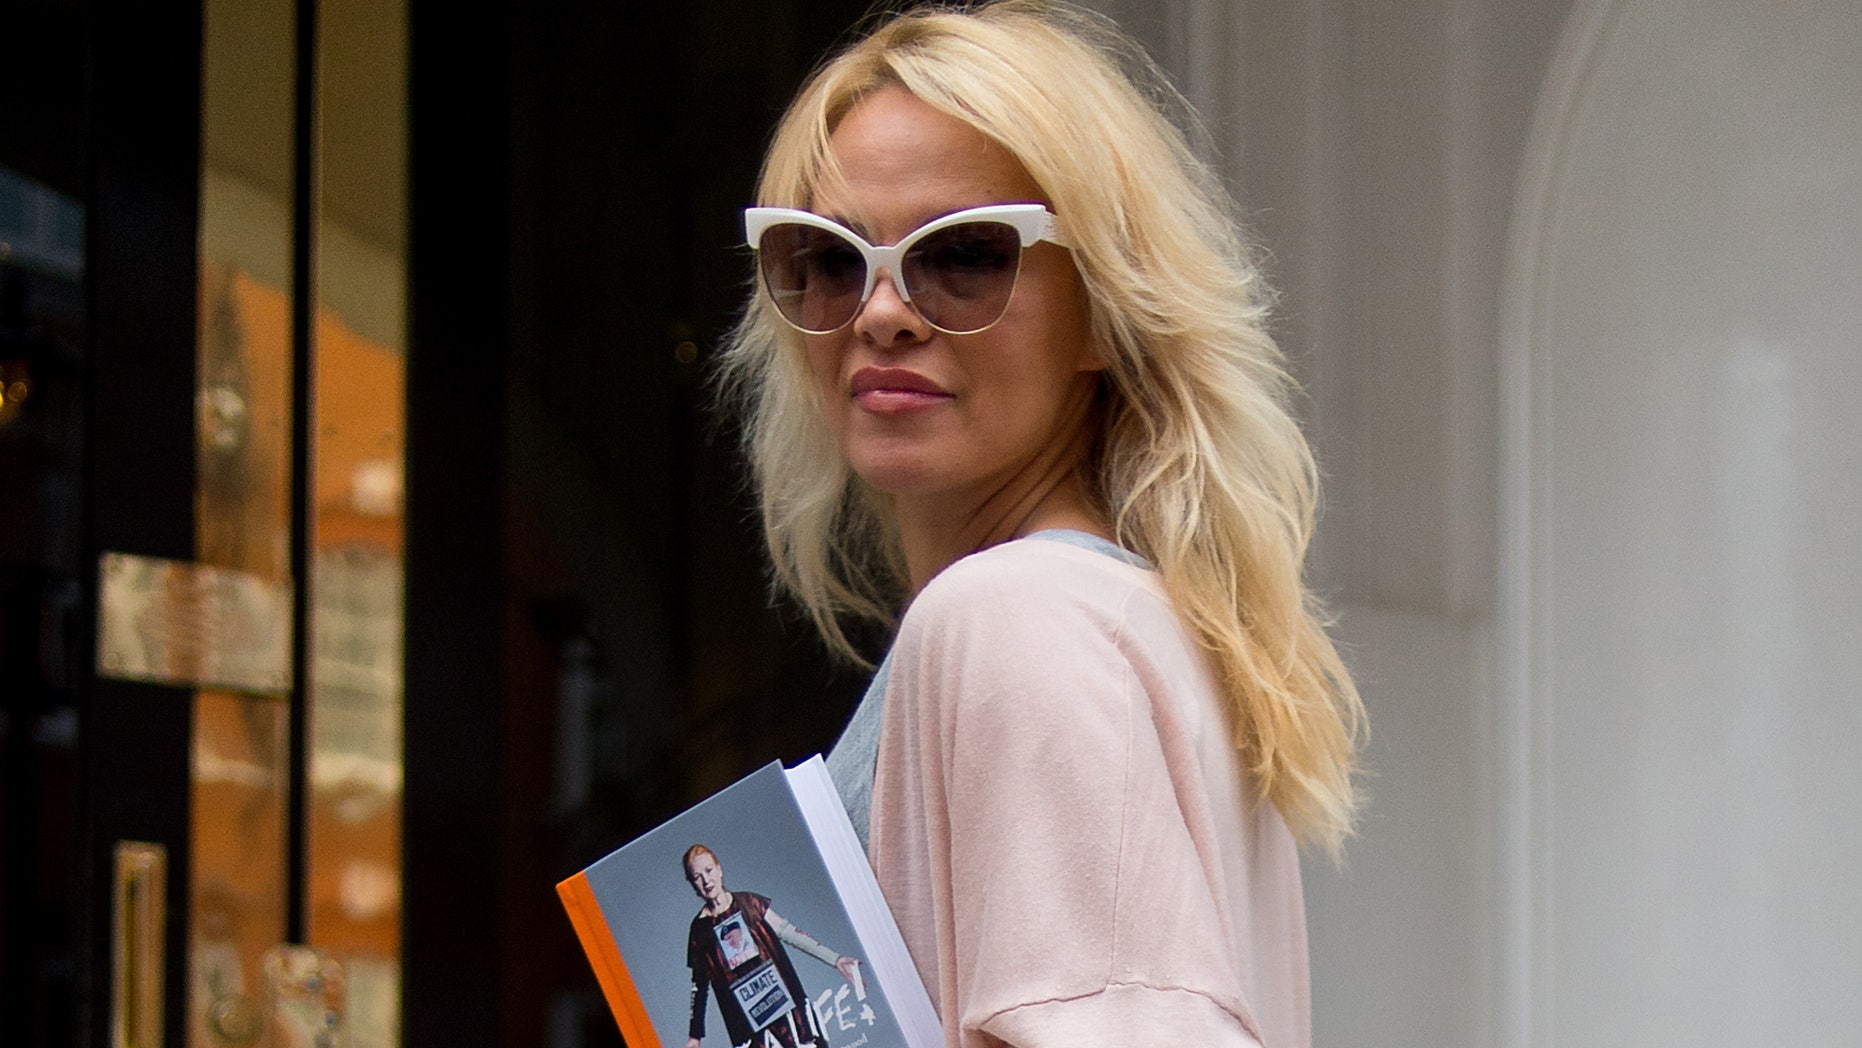 LONDON, ENGLAND - OCTOBER 15:  Pamela Anderson delivers lunch to Julian Assange at Embassy of Ecuador on October 15, 2016 in London, England.  (Photo by Ben A. Pruchnie/Getty Images)